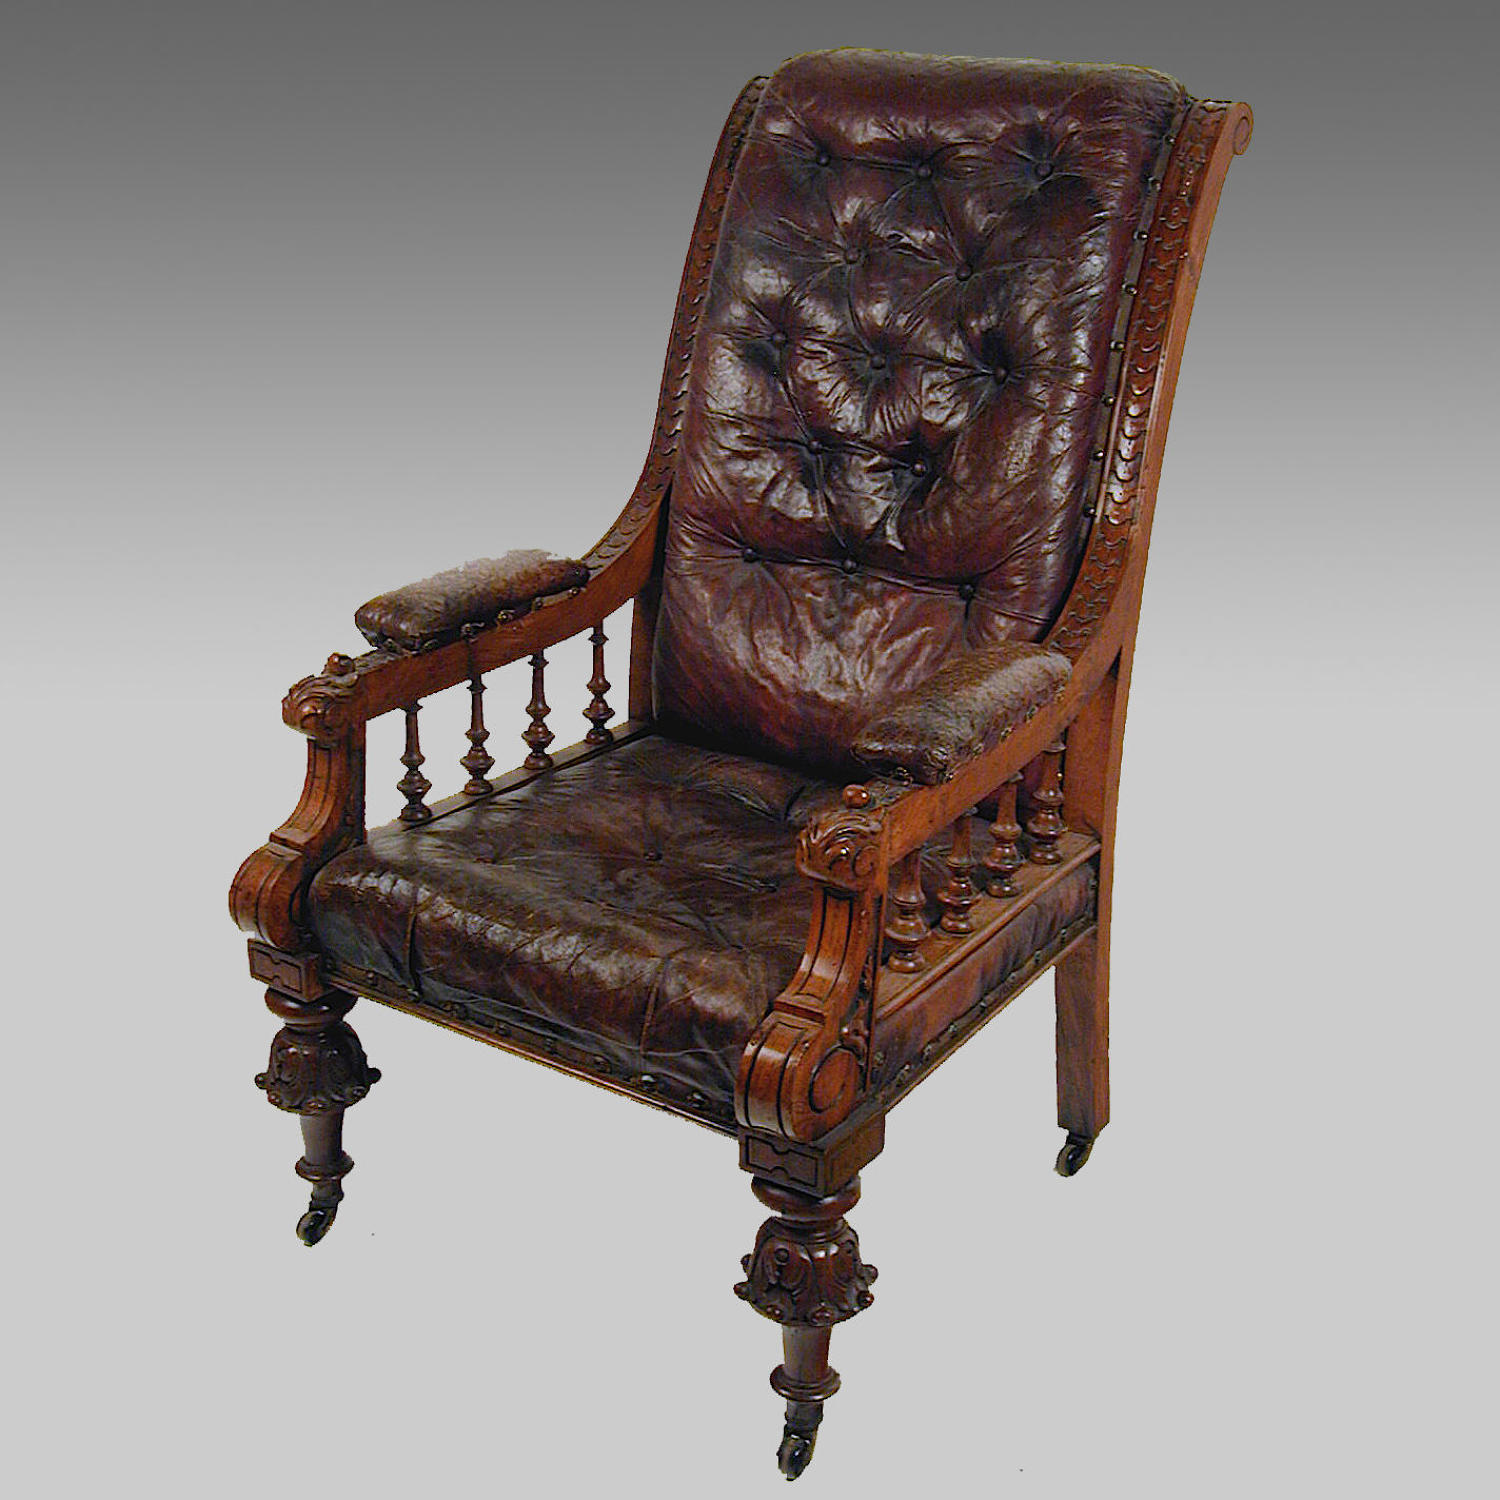 19th century oak and leather library armchair